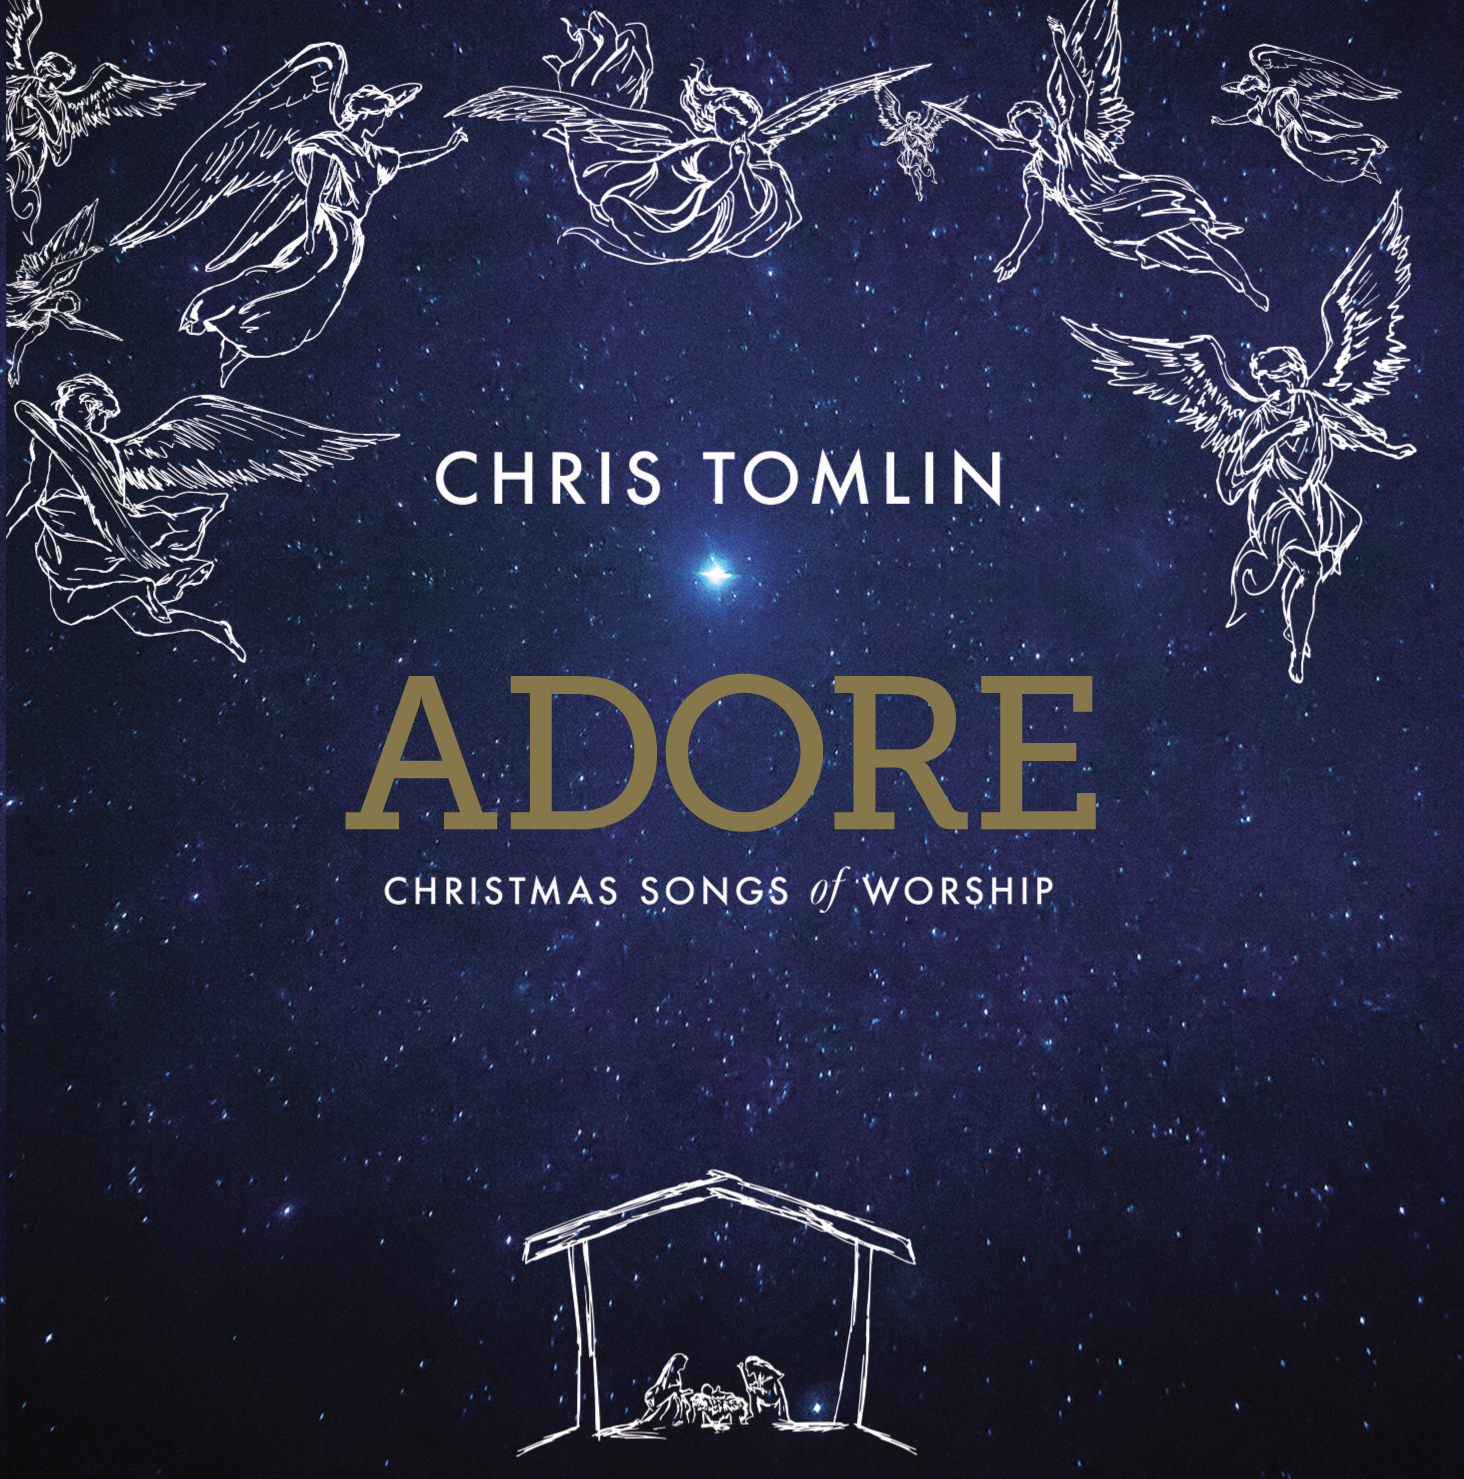 Chris Tomlin - Adore Christmas Songs Of Worship (CD)